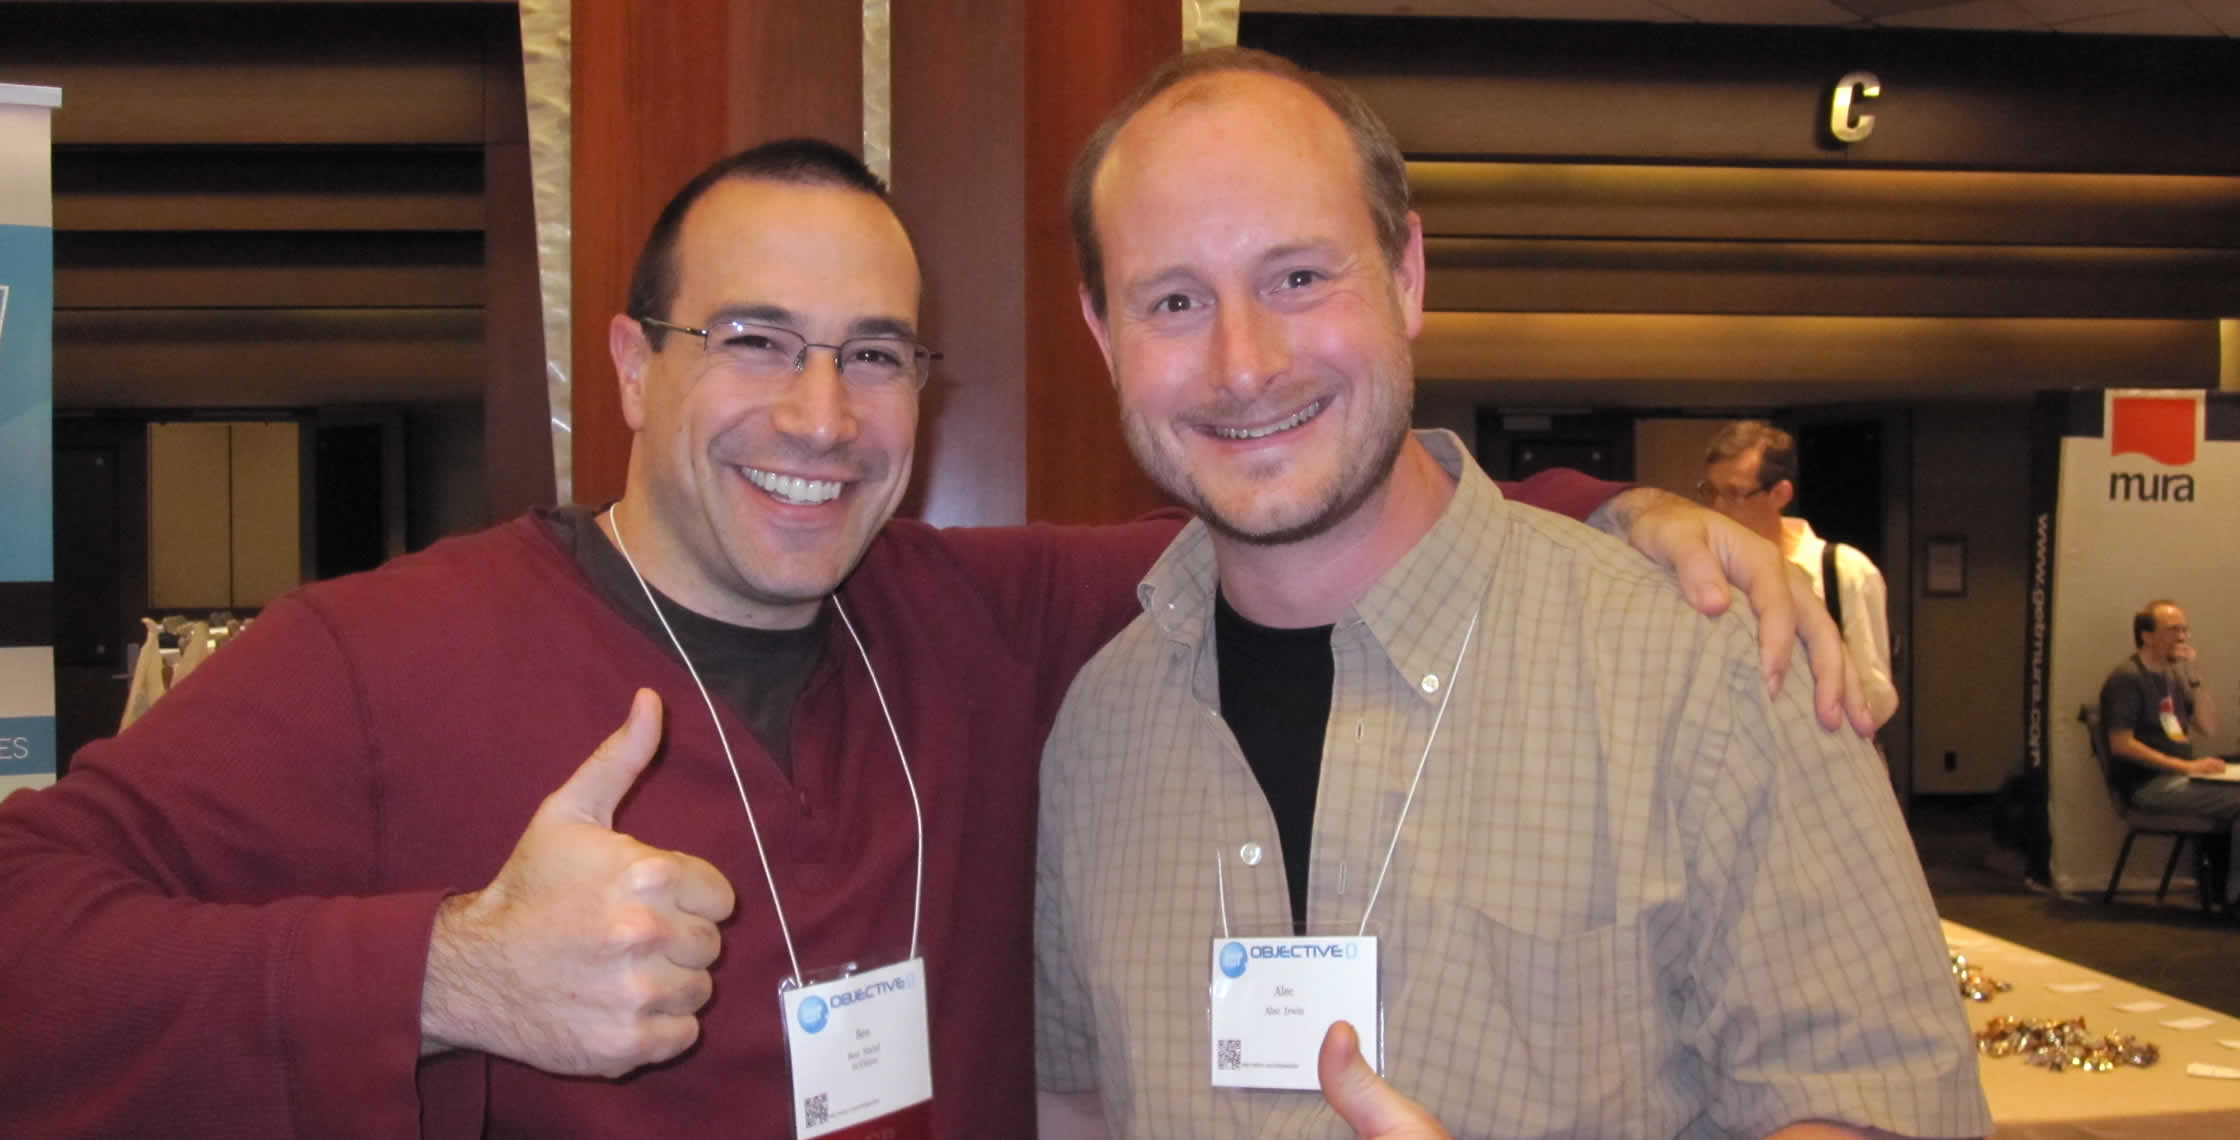 Ben Nadel at cf.Objective() 2012 (Minneapolis, MN) with: Alec Irwin